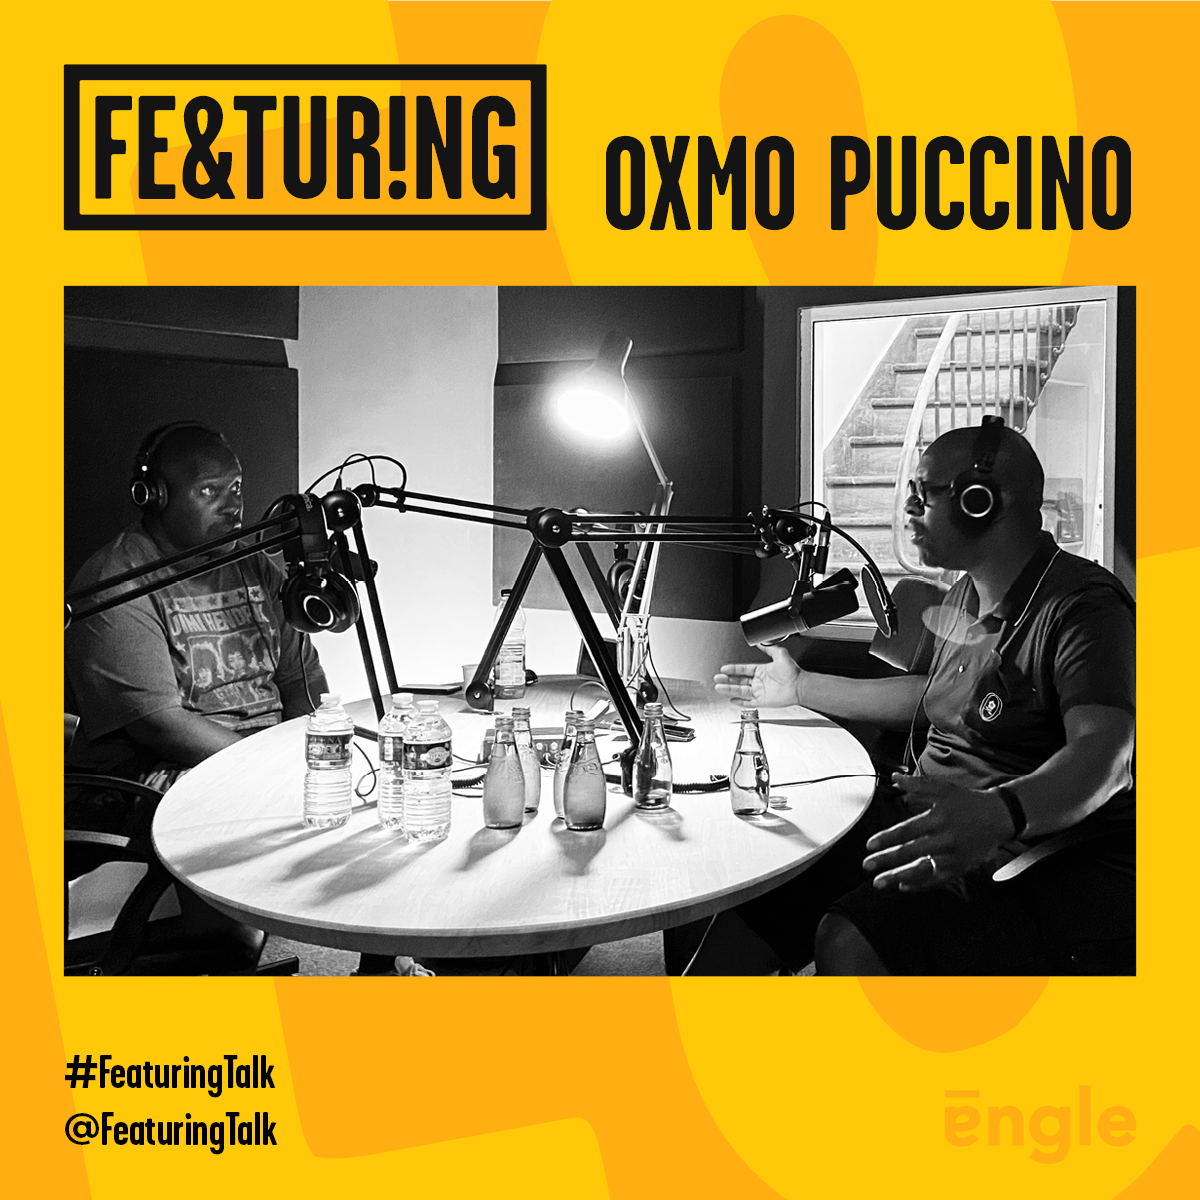 Featuring Oxmo Puccino